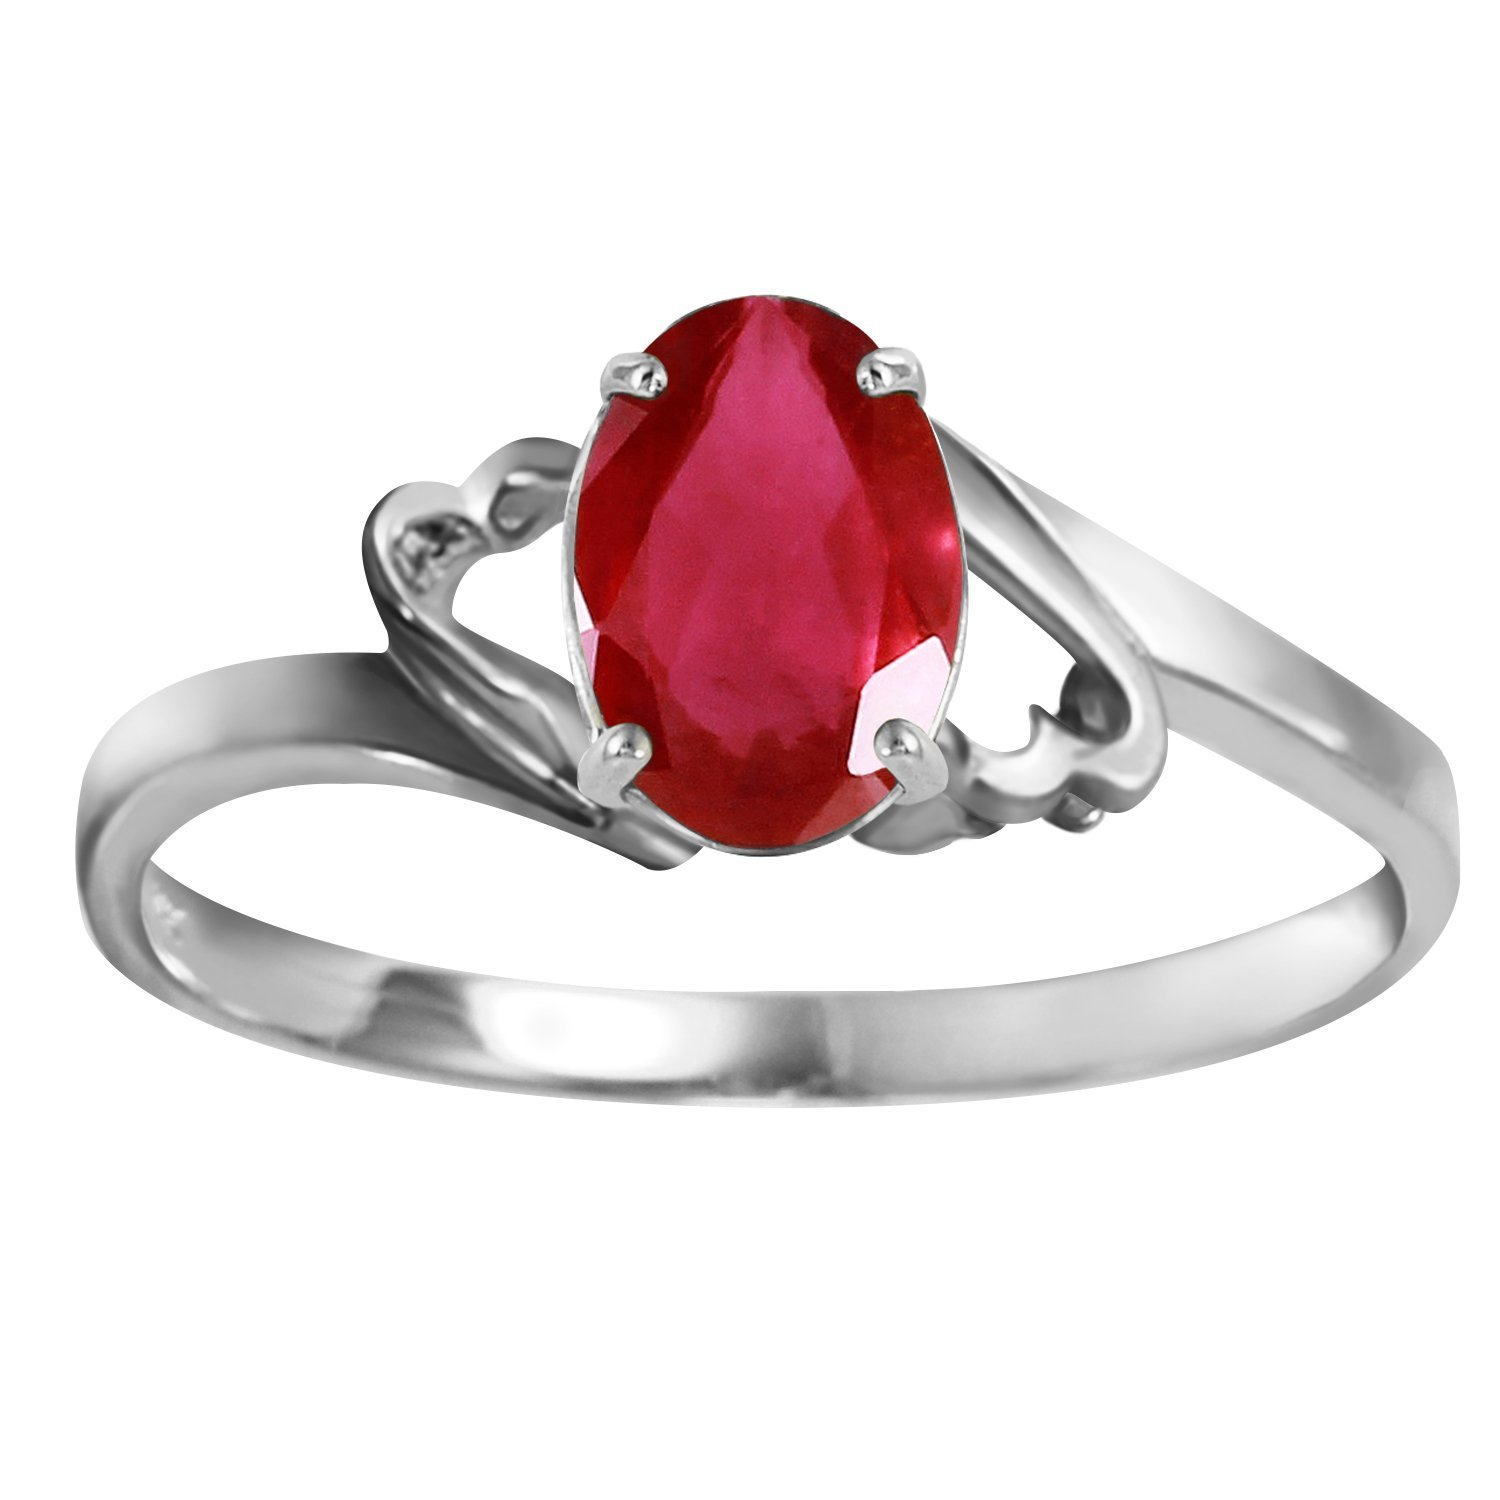 1.15 Carat 14k Solid White Gold Ring with Natural Oval-Shaped Ruby - Size 10